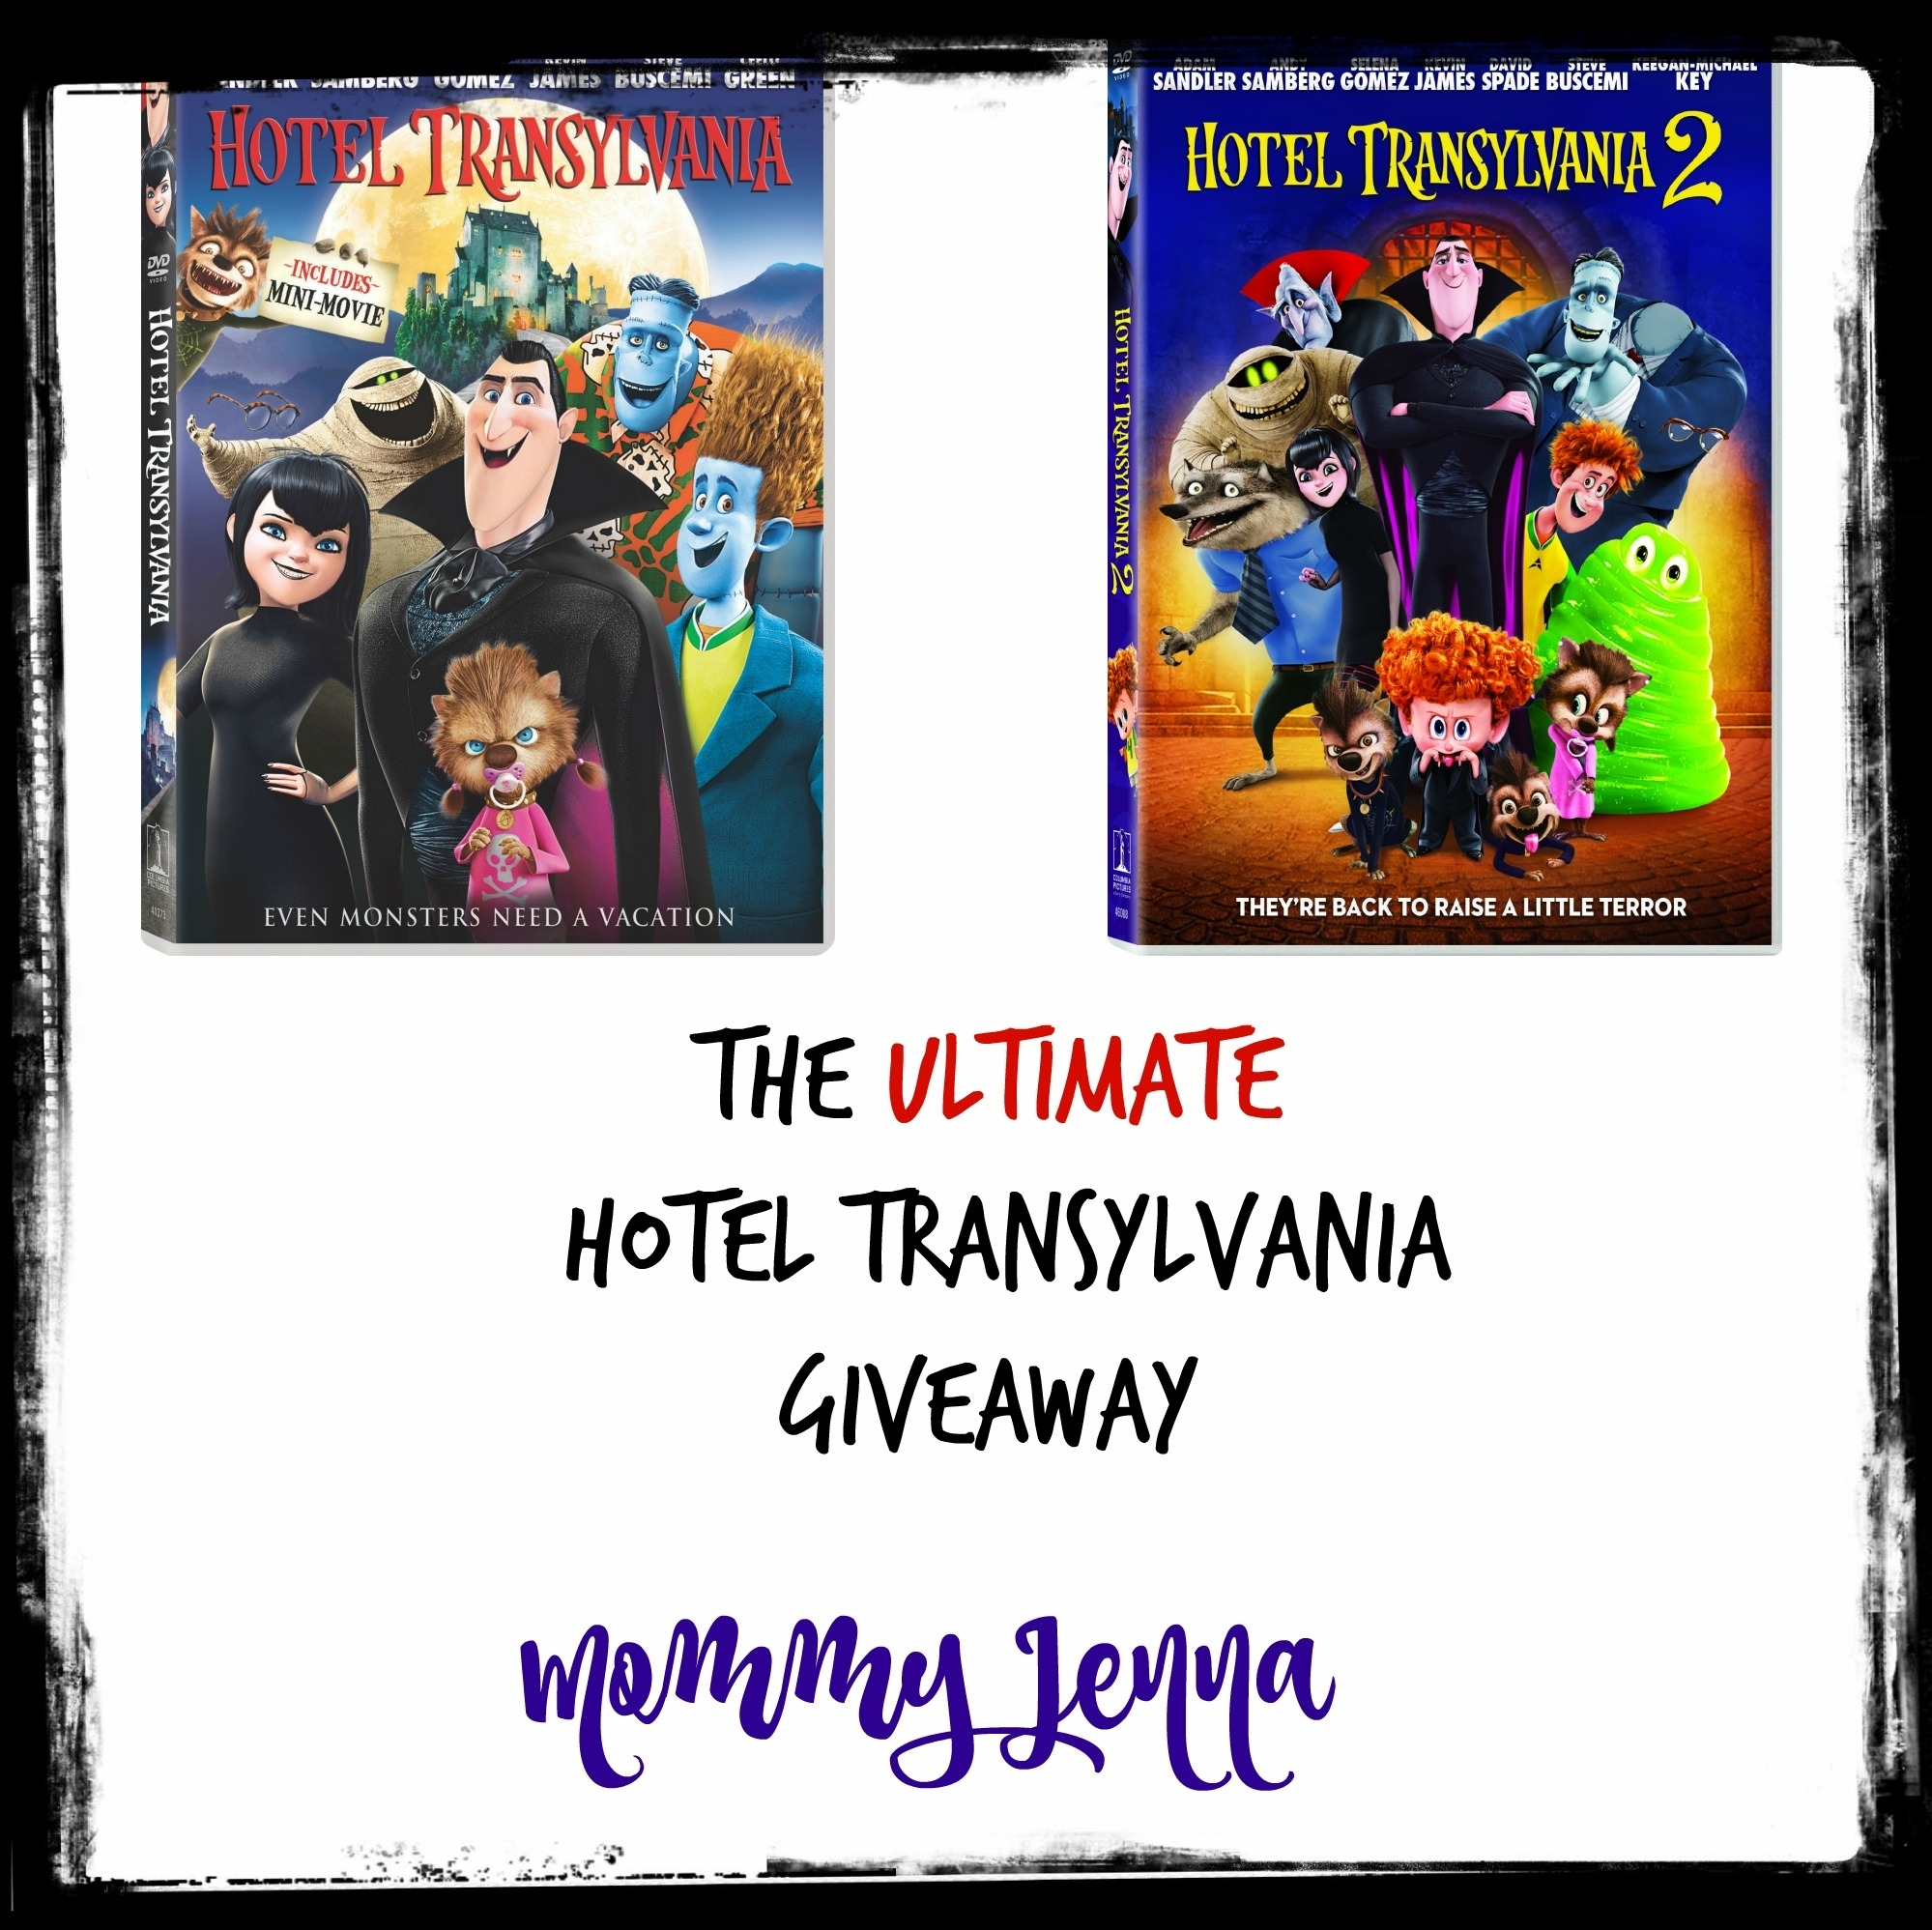 Catch up with the ultimate hotel transylvania giveaway mommy jenna your entries publicscrutiny Image collections